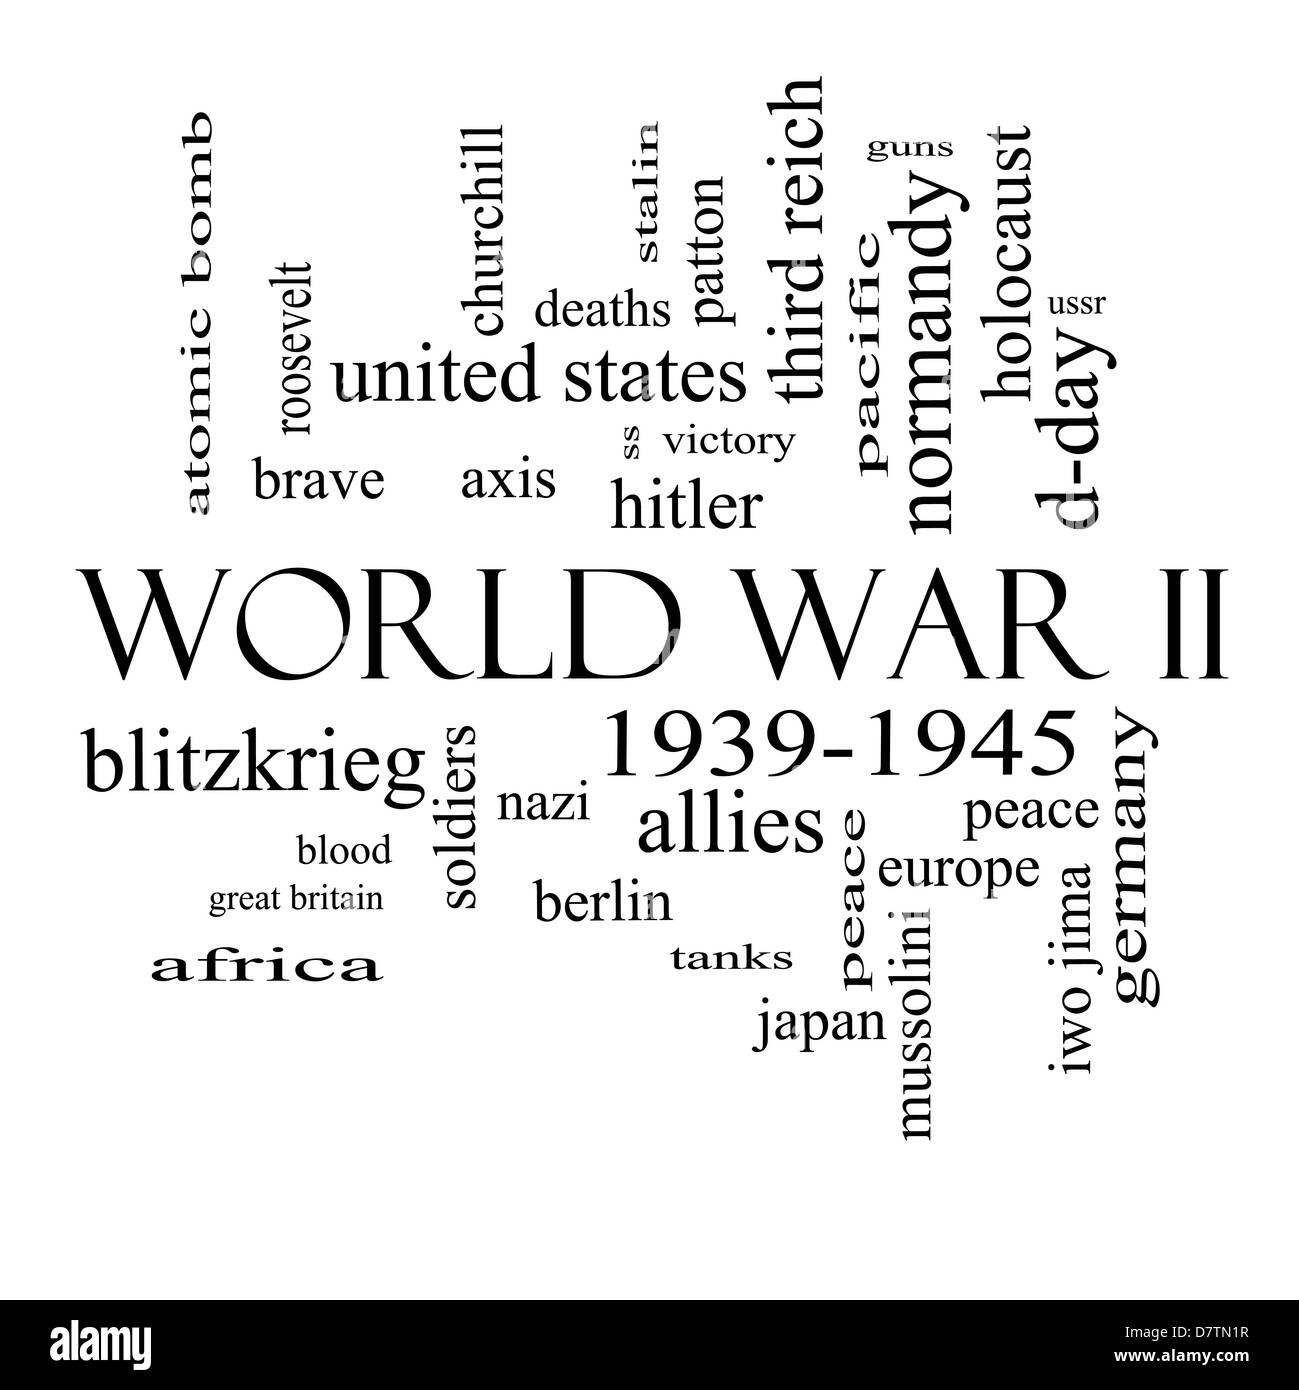 World War II Word Cloud Concept in black and white with great terms such as guns, axis, allies, victory and more. Stock Photo